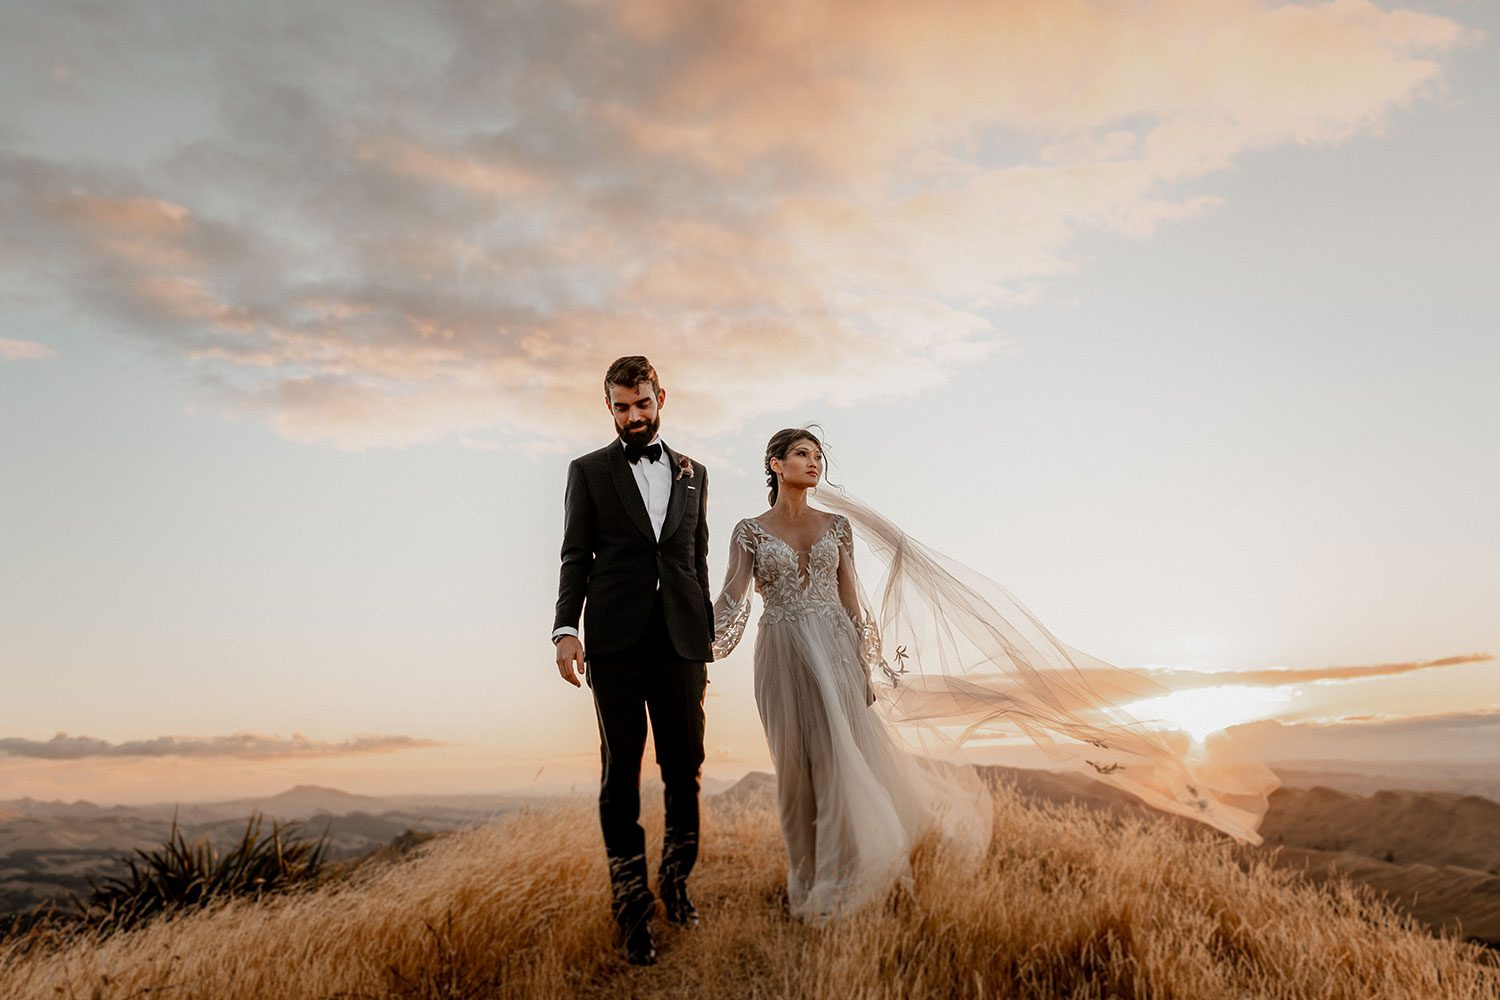 Bride wearing bespoke designer wedding dress by Vinka Bridal Boutique NZ, adorned with delicate applique lace and puffed sleeves - walking on hill